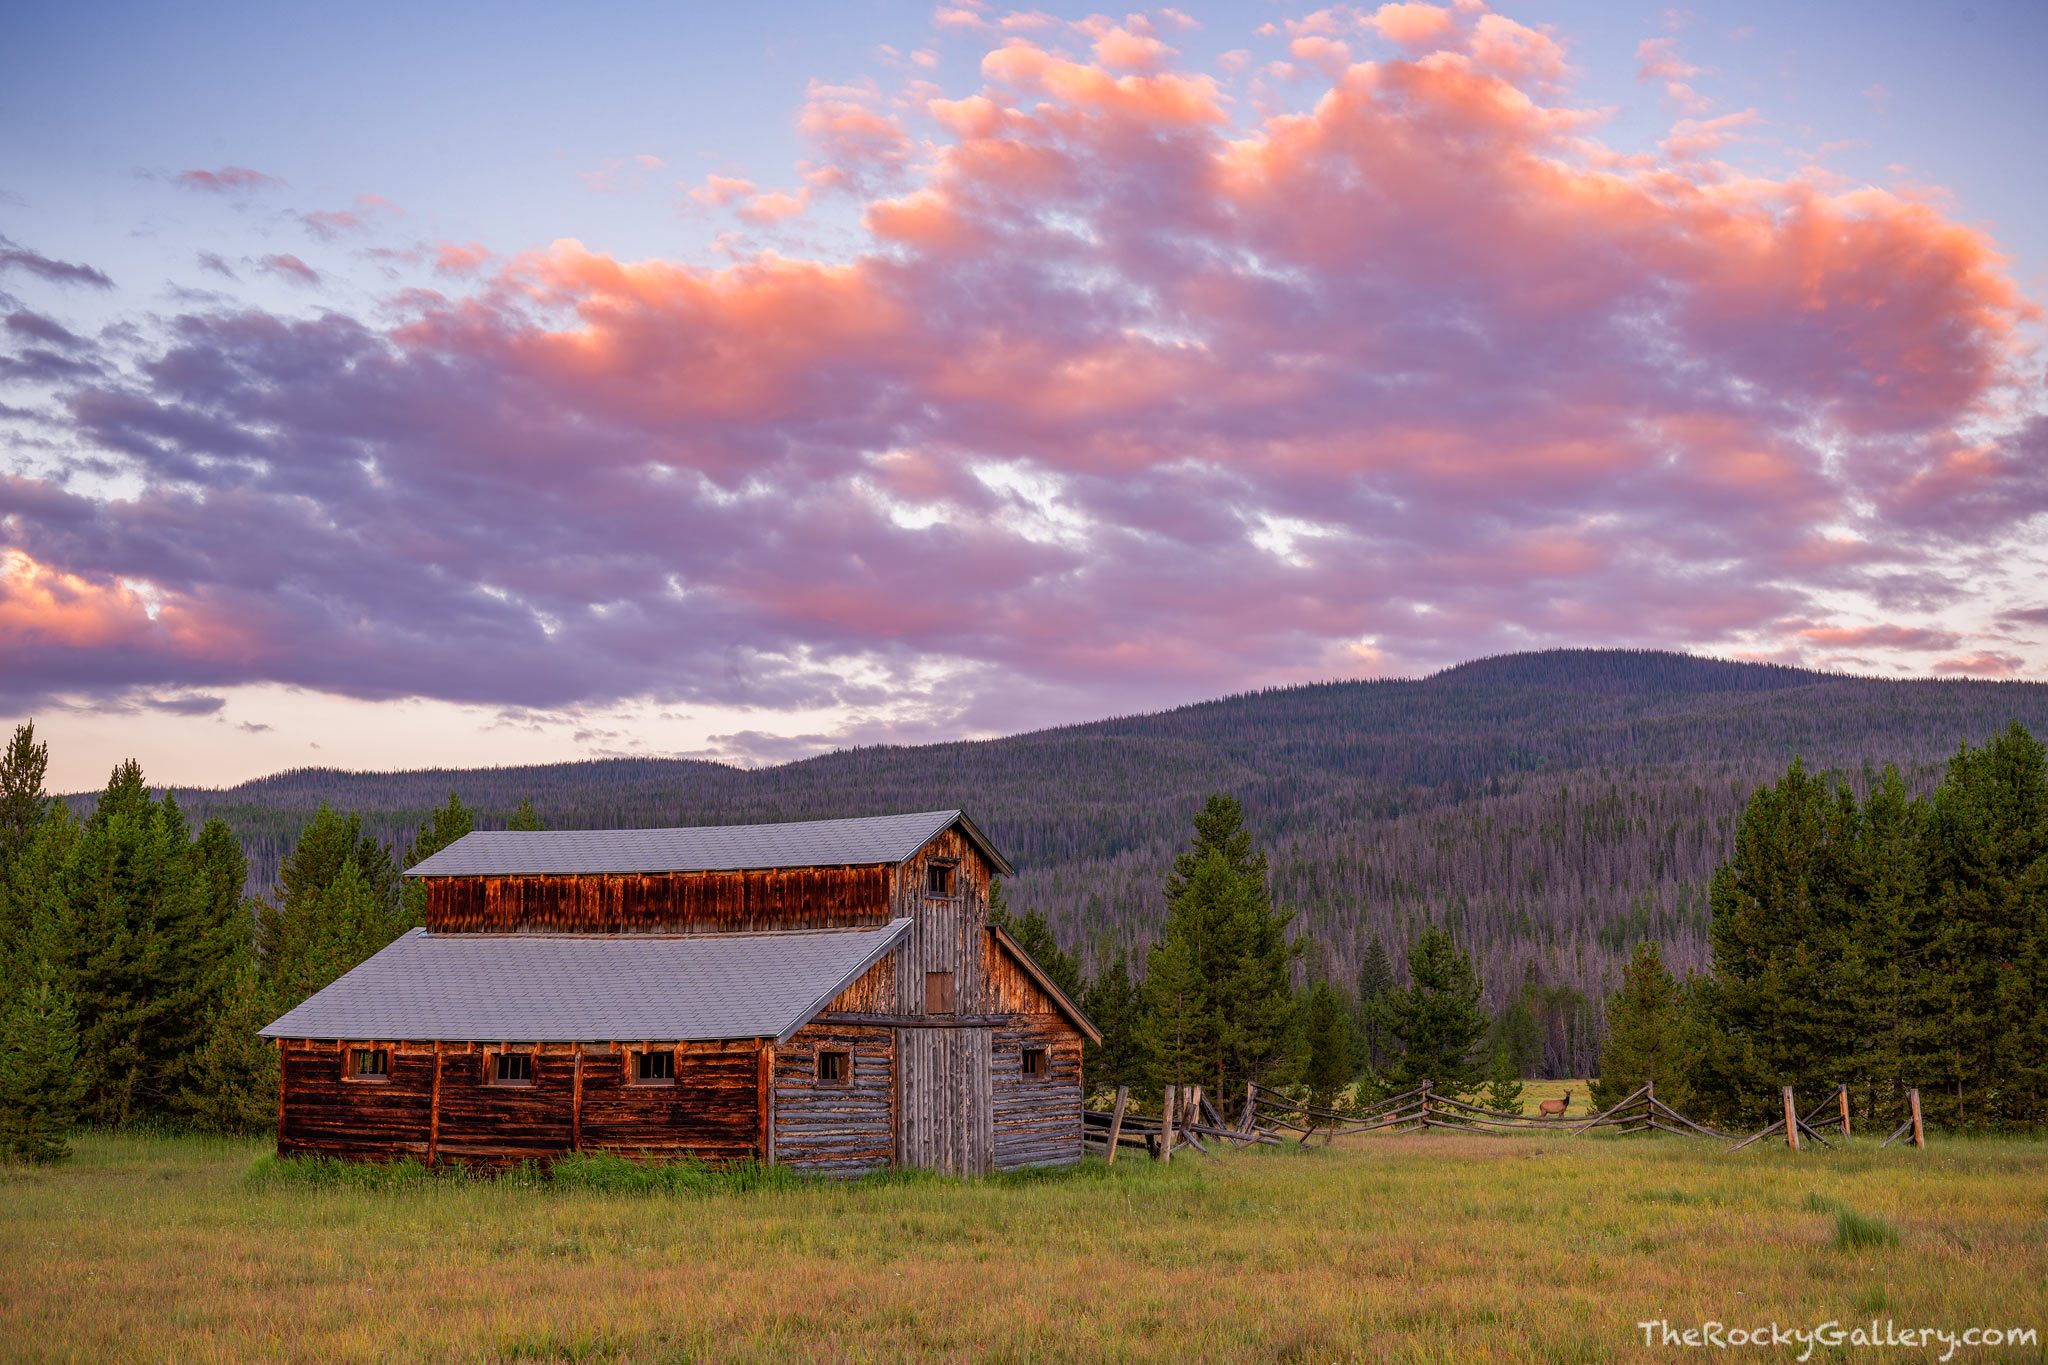 Little Buckaroo Barn,Trail River Ranch,Kawuneeche Valley,Elk,Sunrise,July,Grand Lake,West Side,RMNP,Colorado,Rocky Mountain National Park,Landscape,Photography,Hand of Man,Barn,Never Summer Mountains,, photo